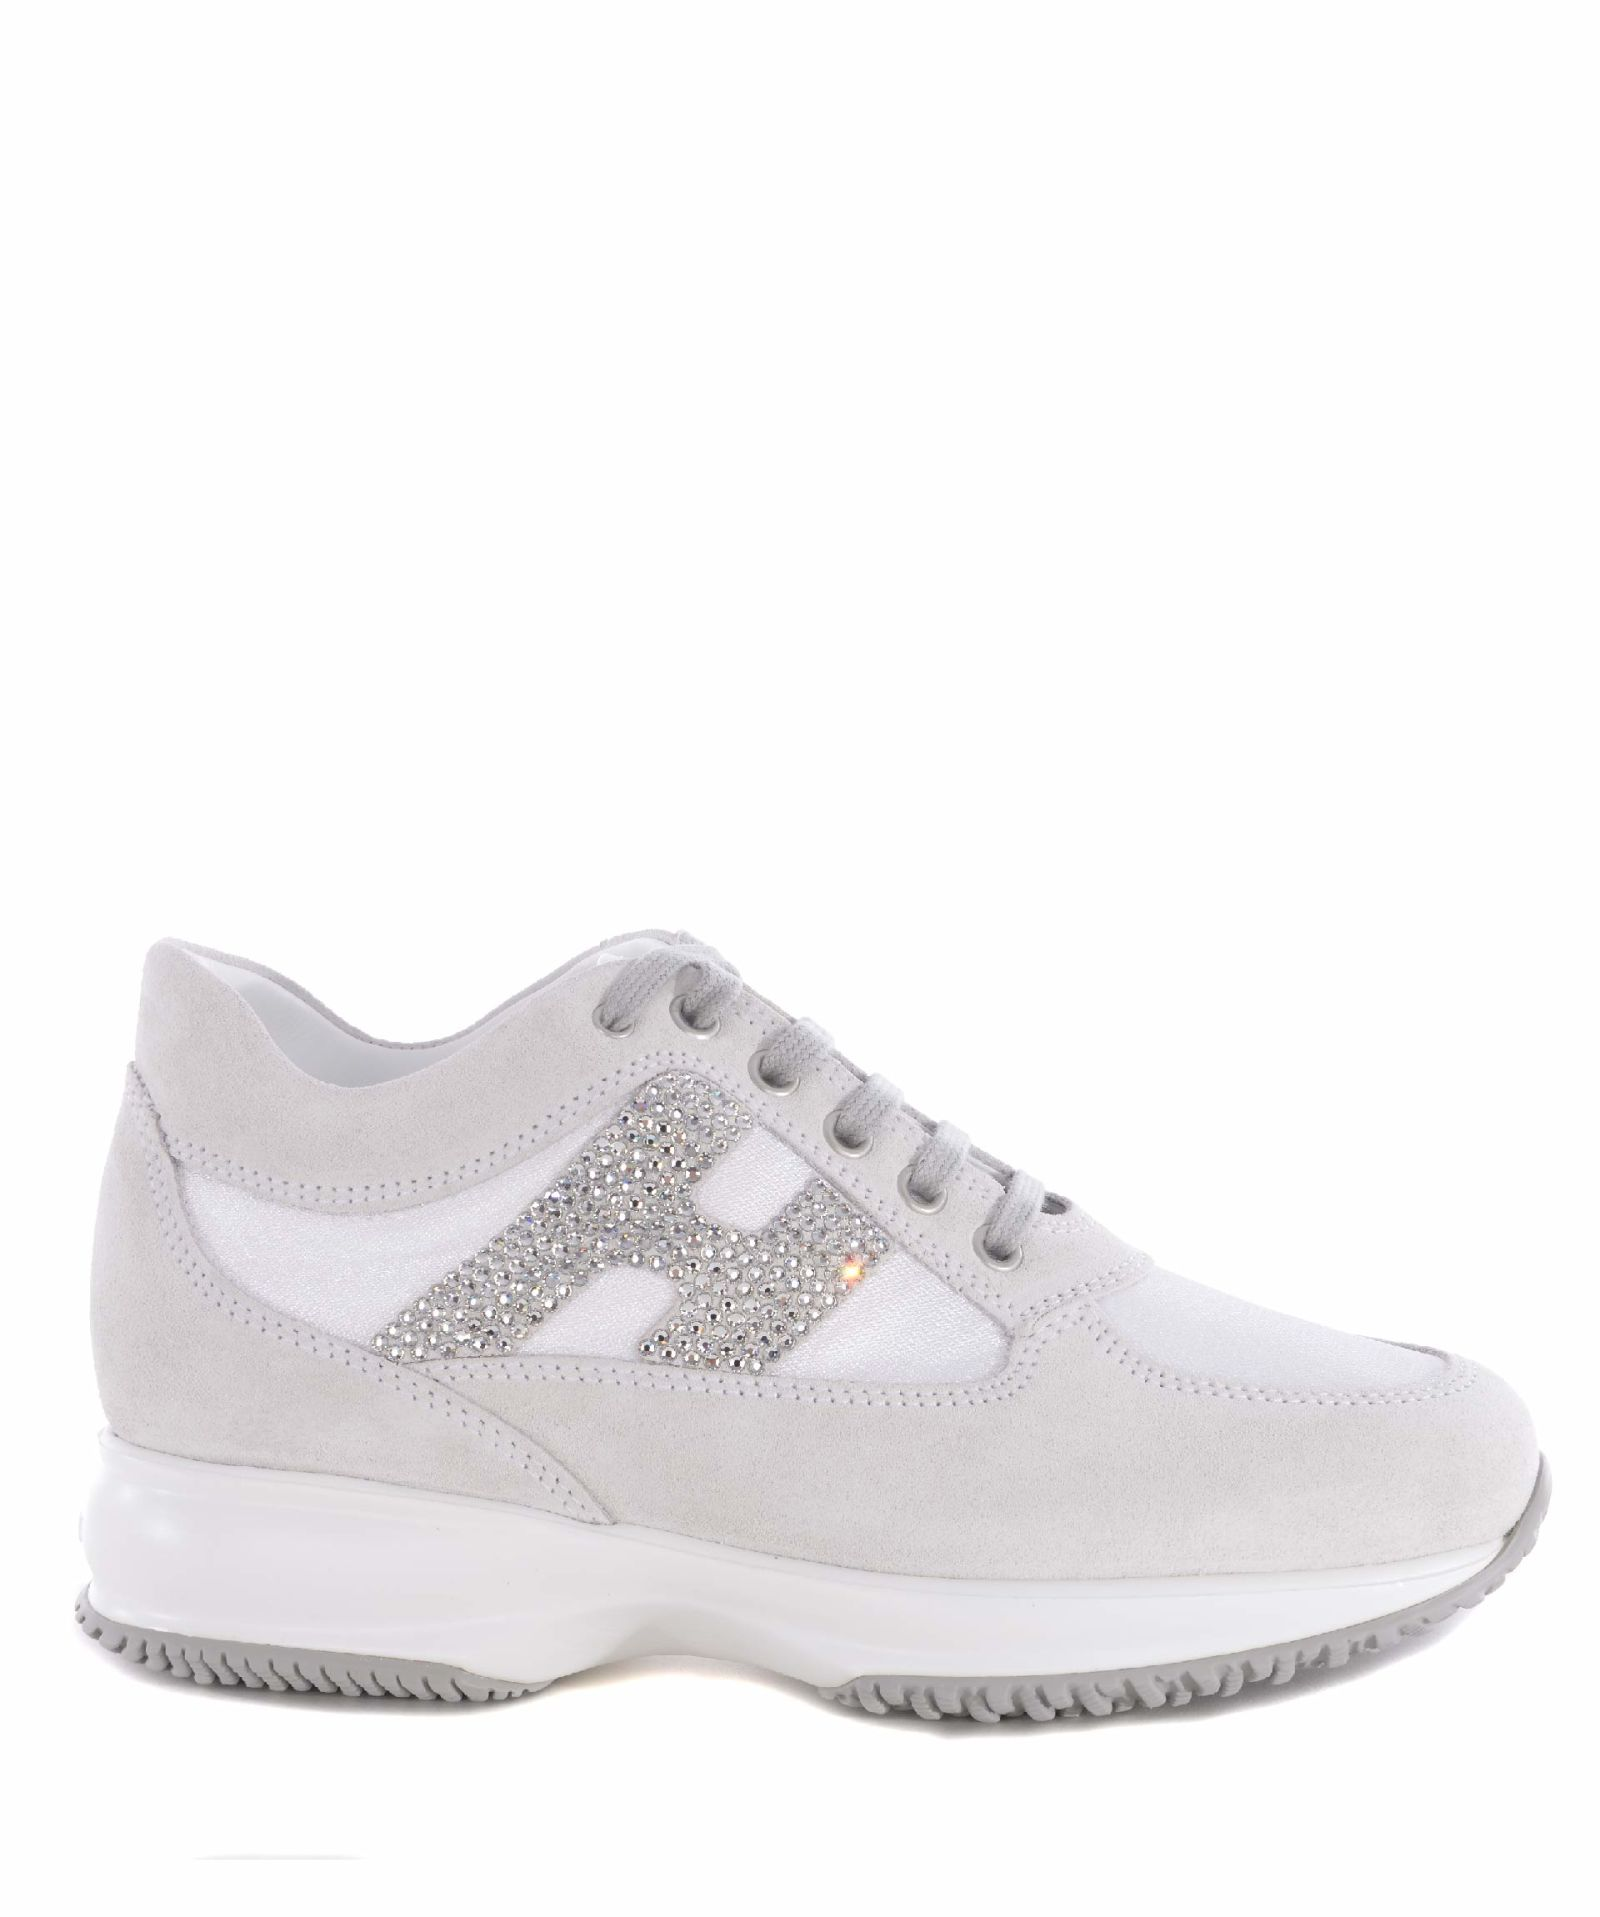 1b2045a4be Hogan Interactive Strass Sneakers - Bianco/ghiaccio - 10596874 | italist